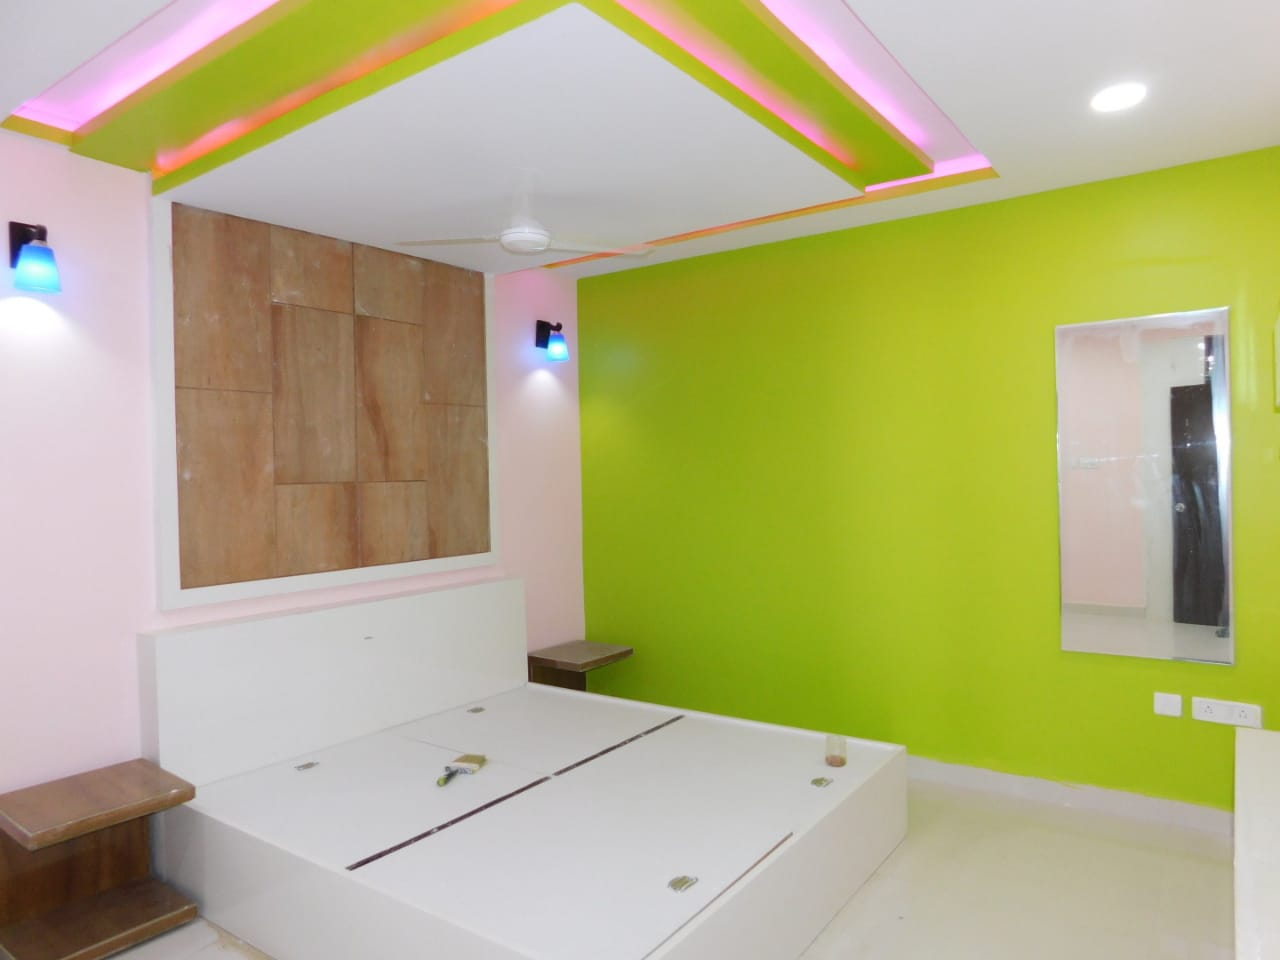 R7 INTERIORS, LOW COST INTERIOR DECORATORS IN  HYDERABAD, LOW COST INTERIOR DECORATORS IN  GACHIBOWLI,LOW COST INTERIOR DECORATORS IN KUKATPALLY, LOW COST INTERIOR DECORATORS IN ADIBATLA,